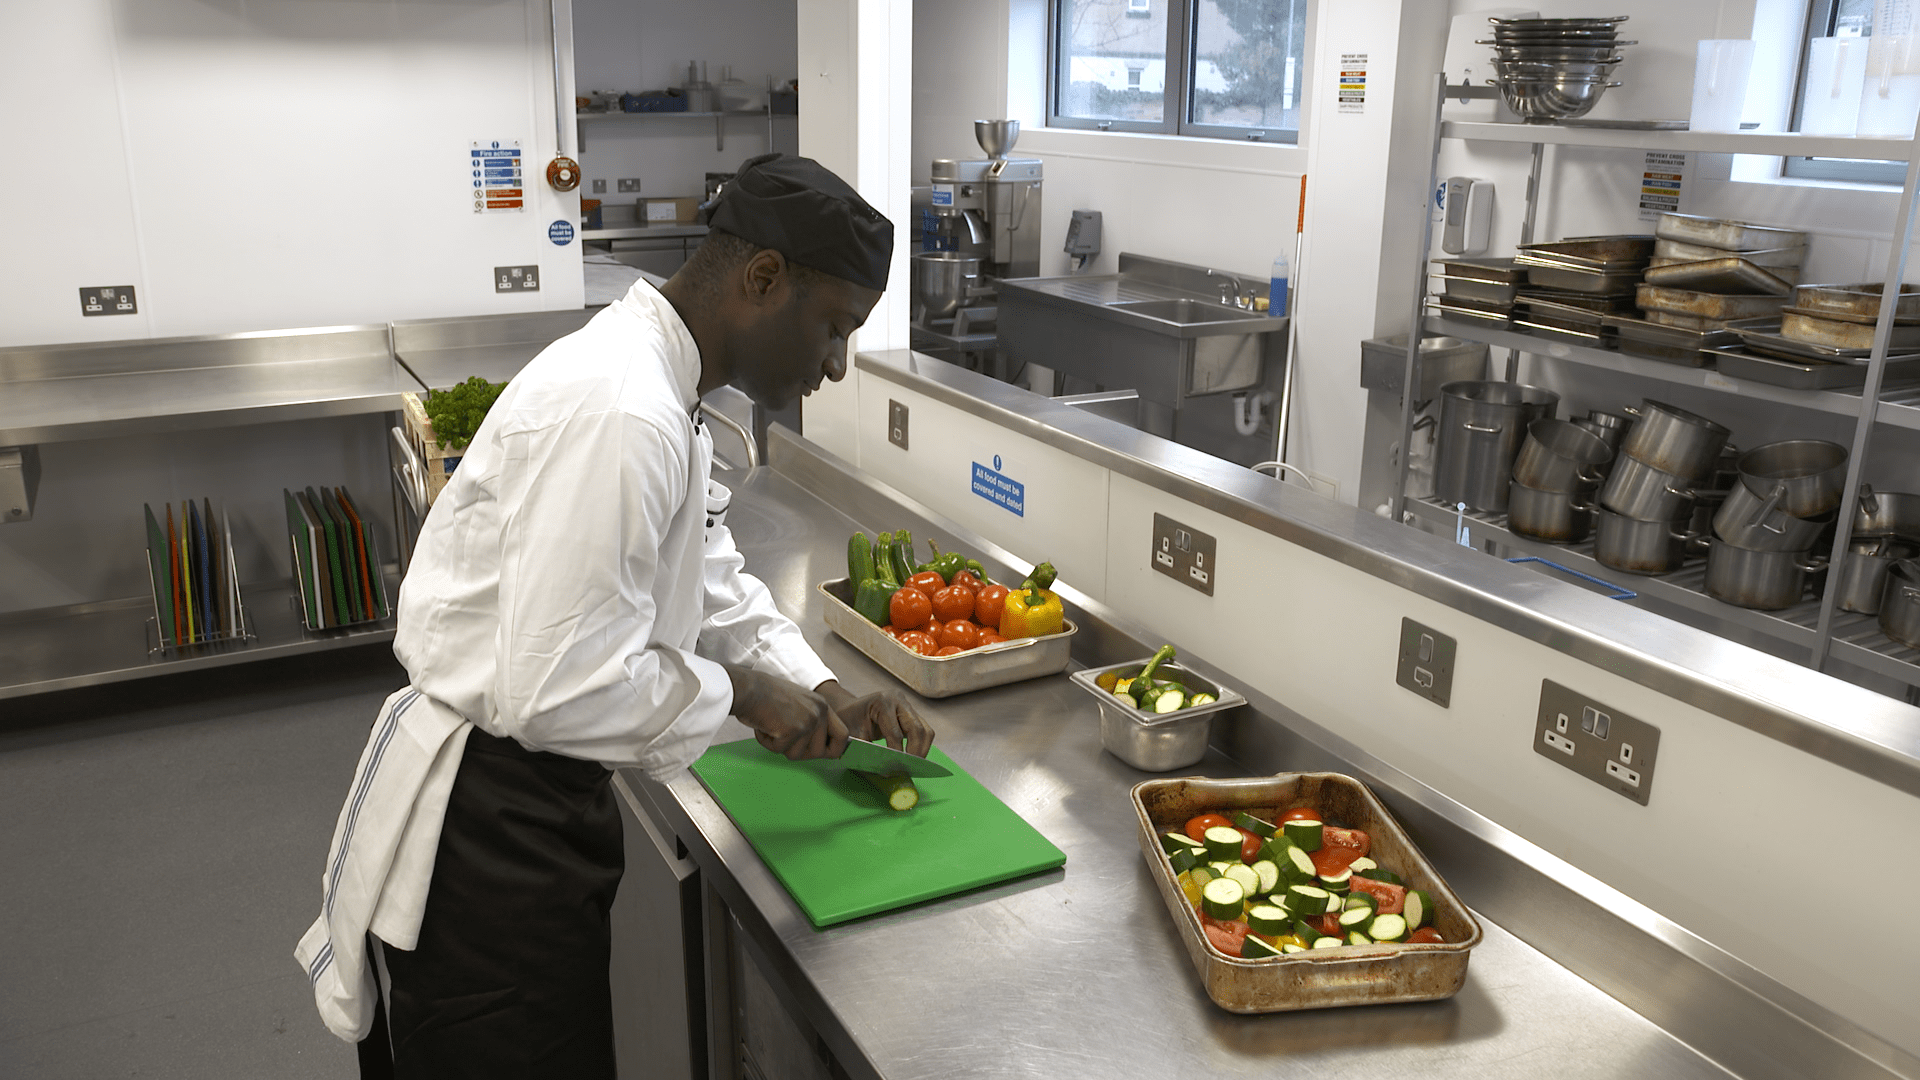 A chef in the kitchen preparing vegetables, taken from iHASCO's online food safety & hygiene course.